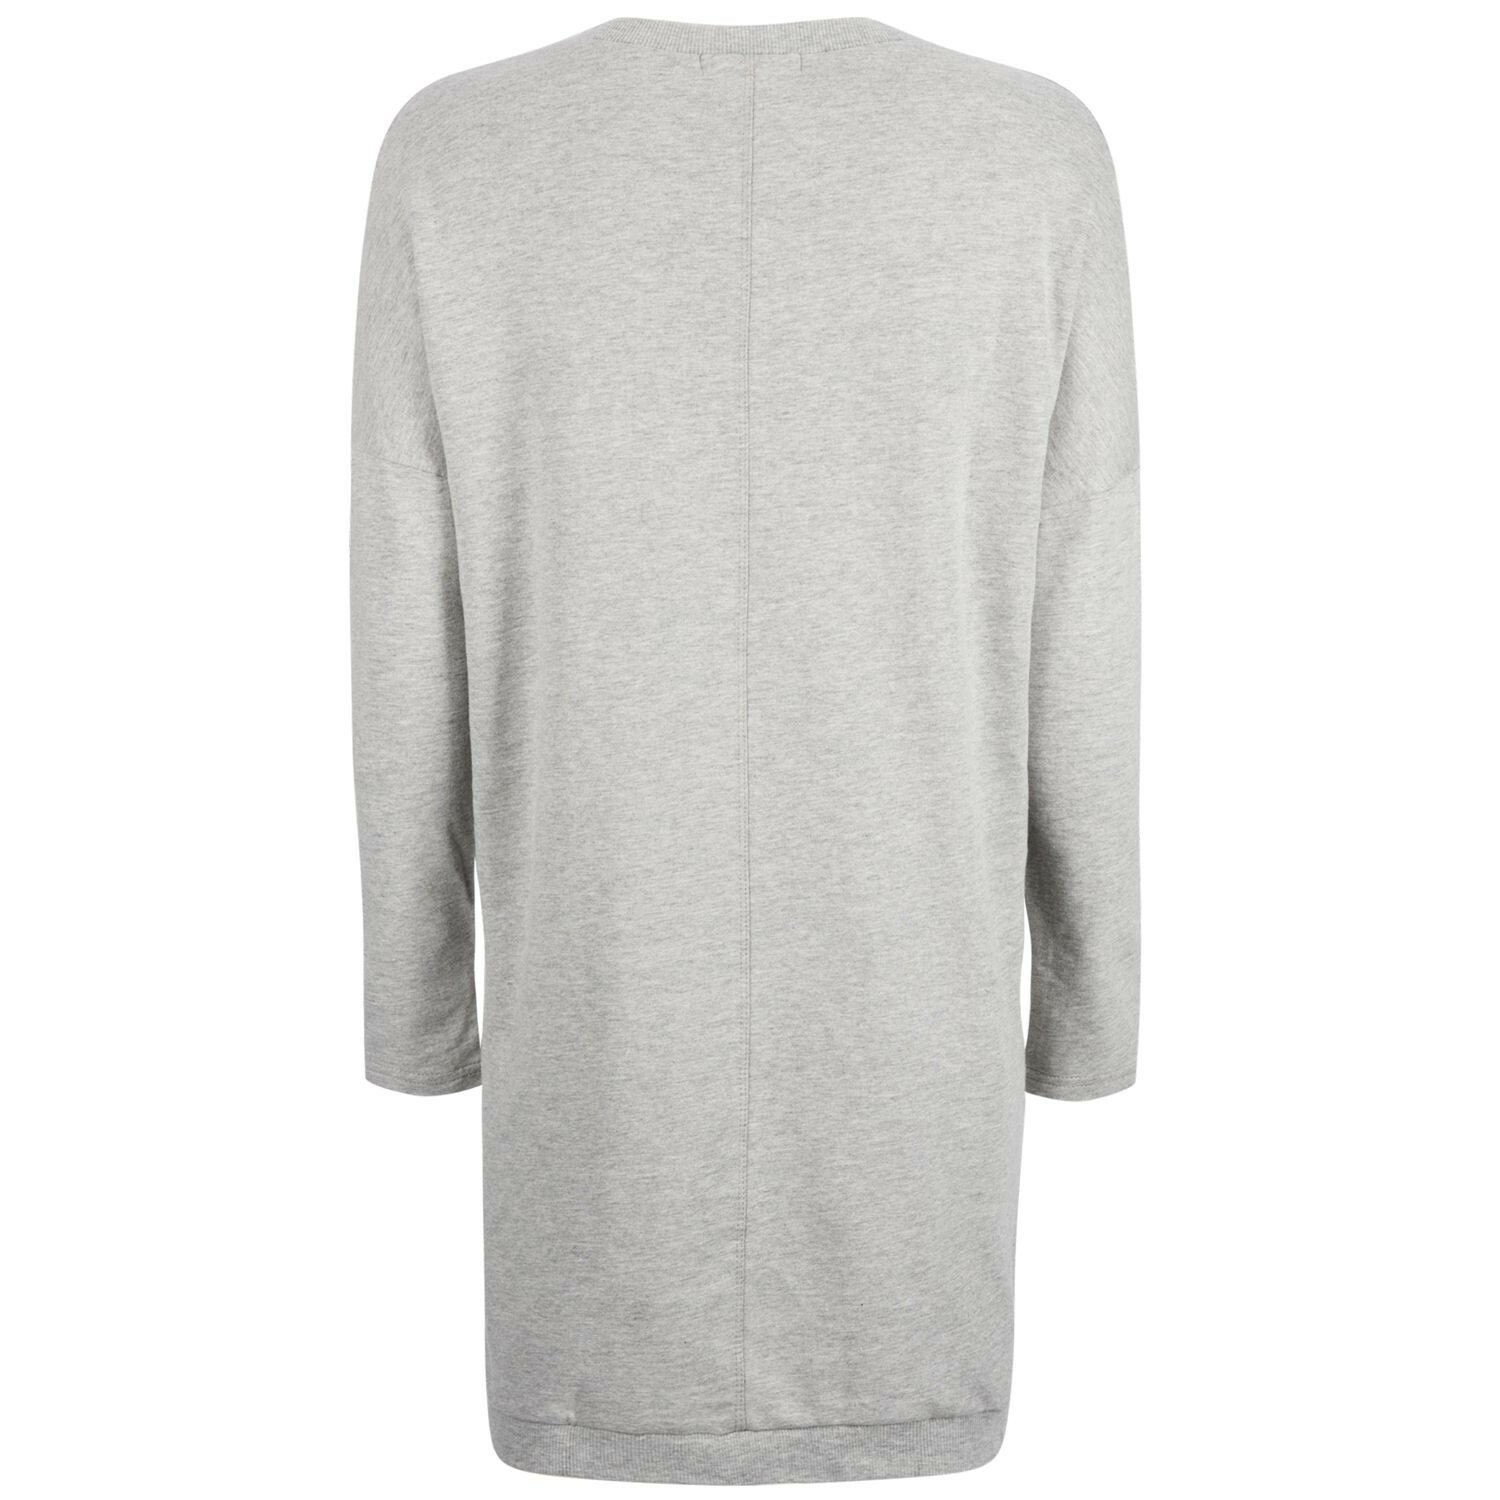 BAGGY SWEATER grey